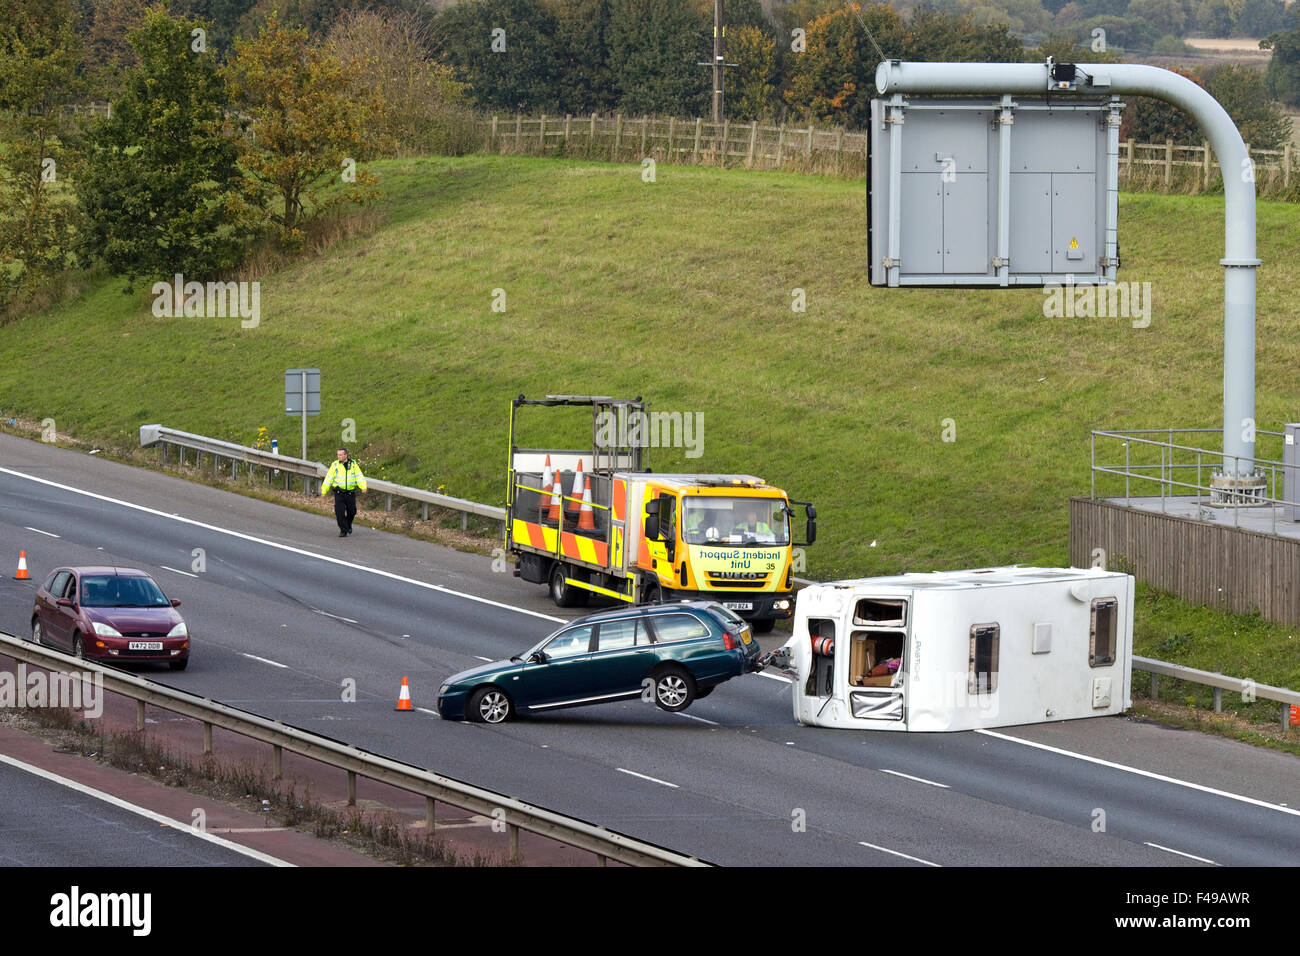 Overturned Caravan on the M40 Oxfordshire, road traffic